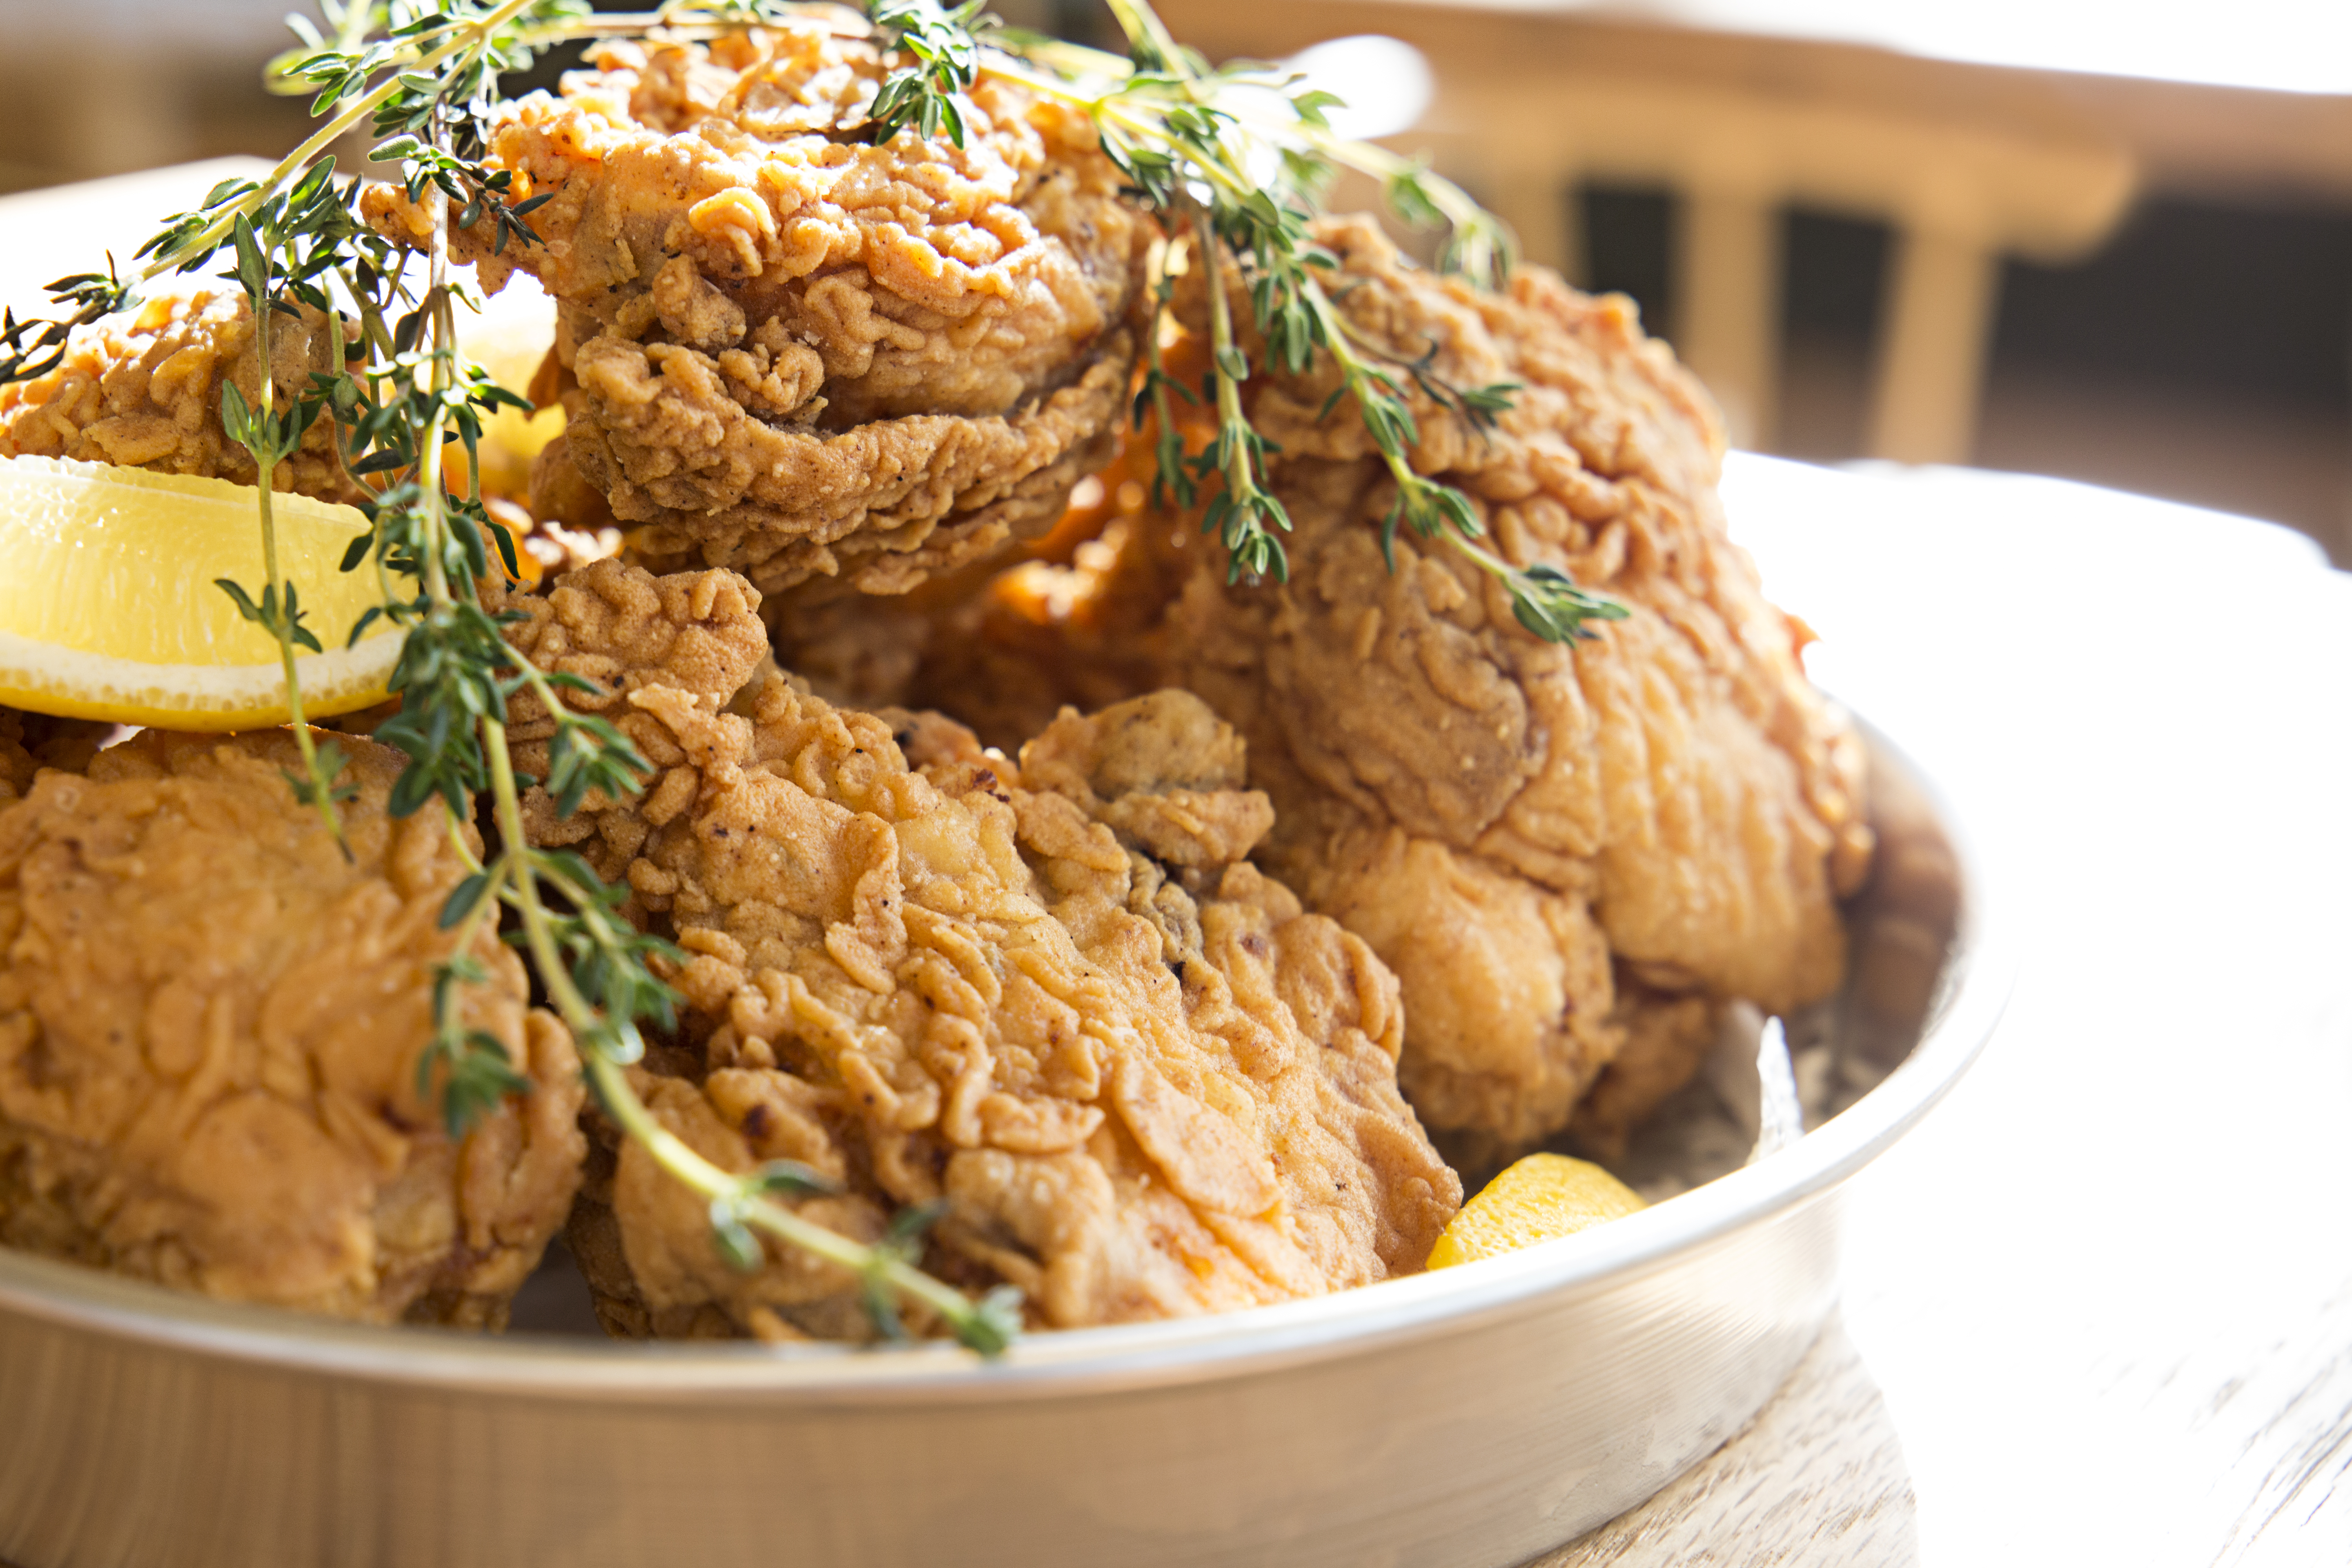 A plate of fried chicken from Southern Proper, a restaurant in Boston's South End neighborhood. The chicken is adorned with sprigs of thyme and lemon wedges, and is served in a pie tin.